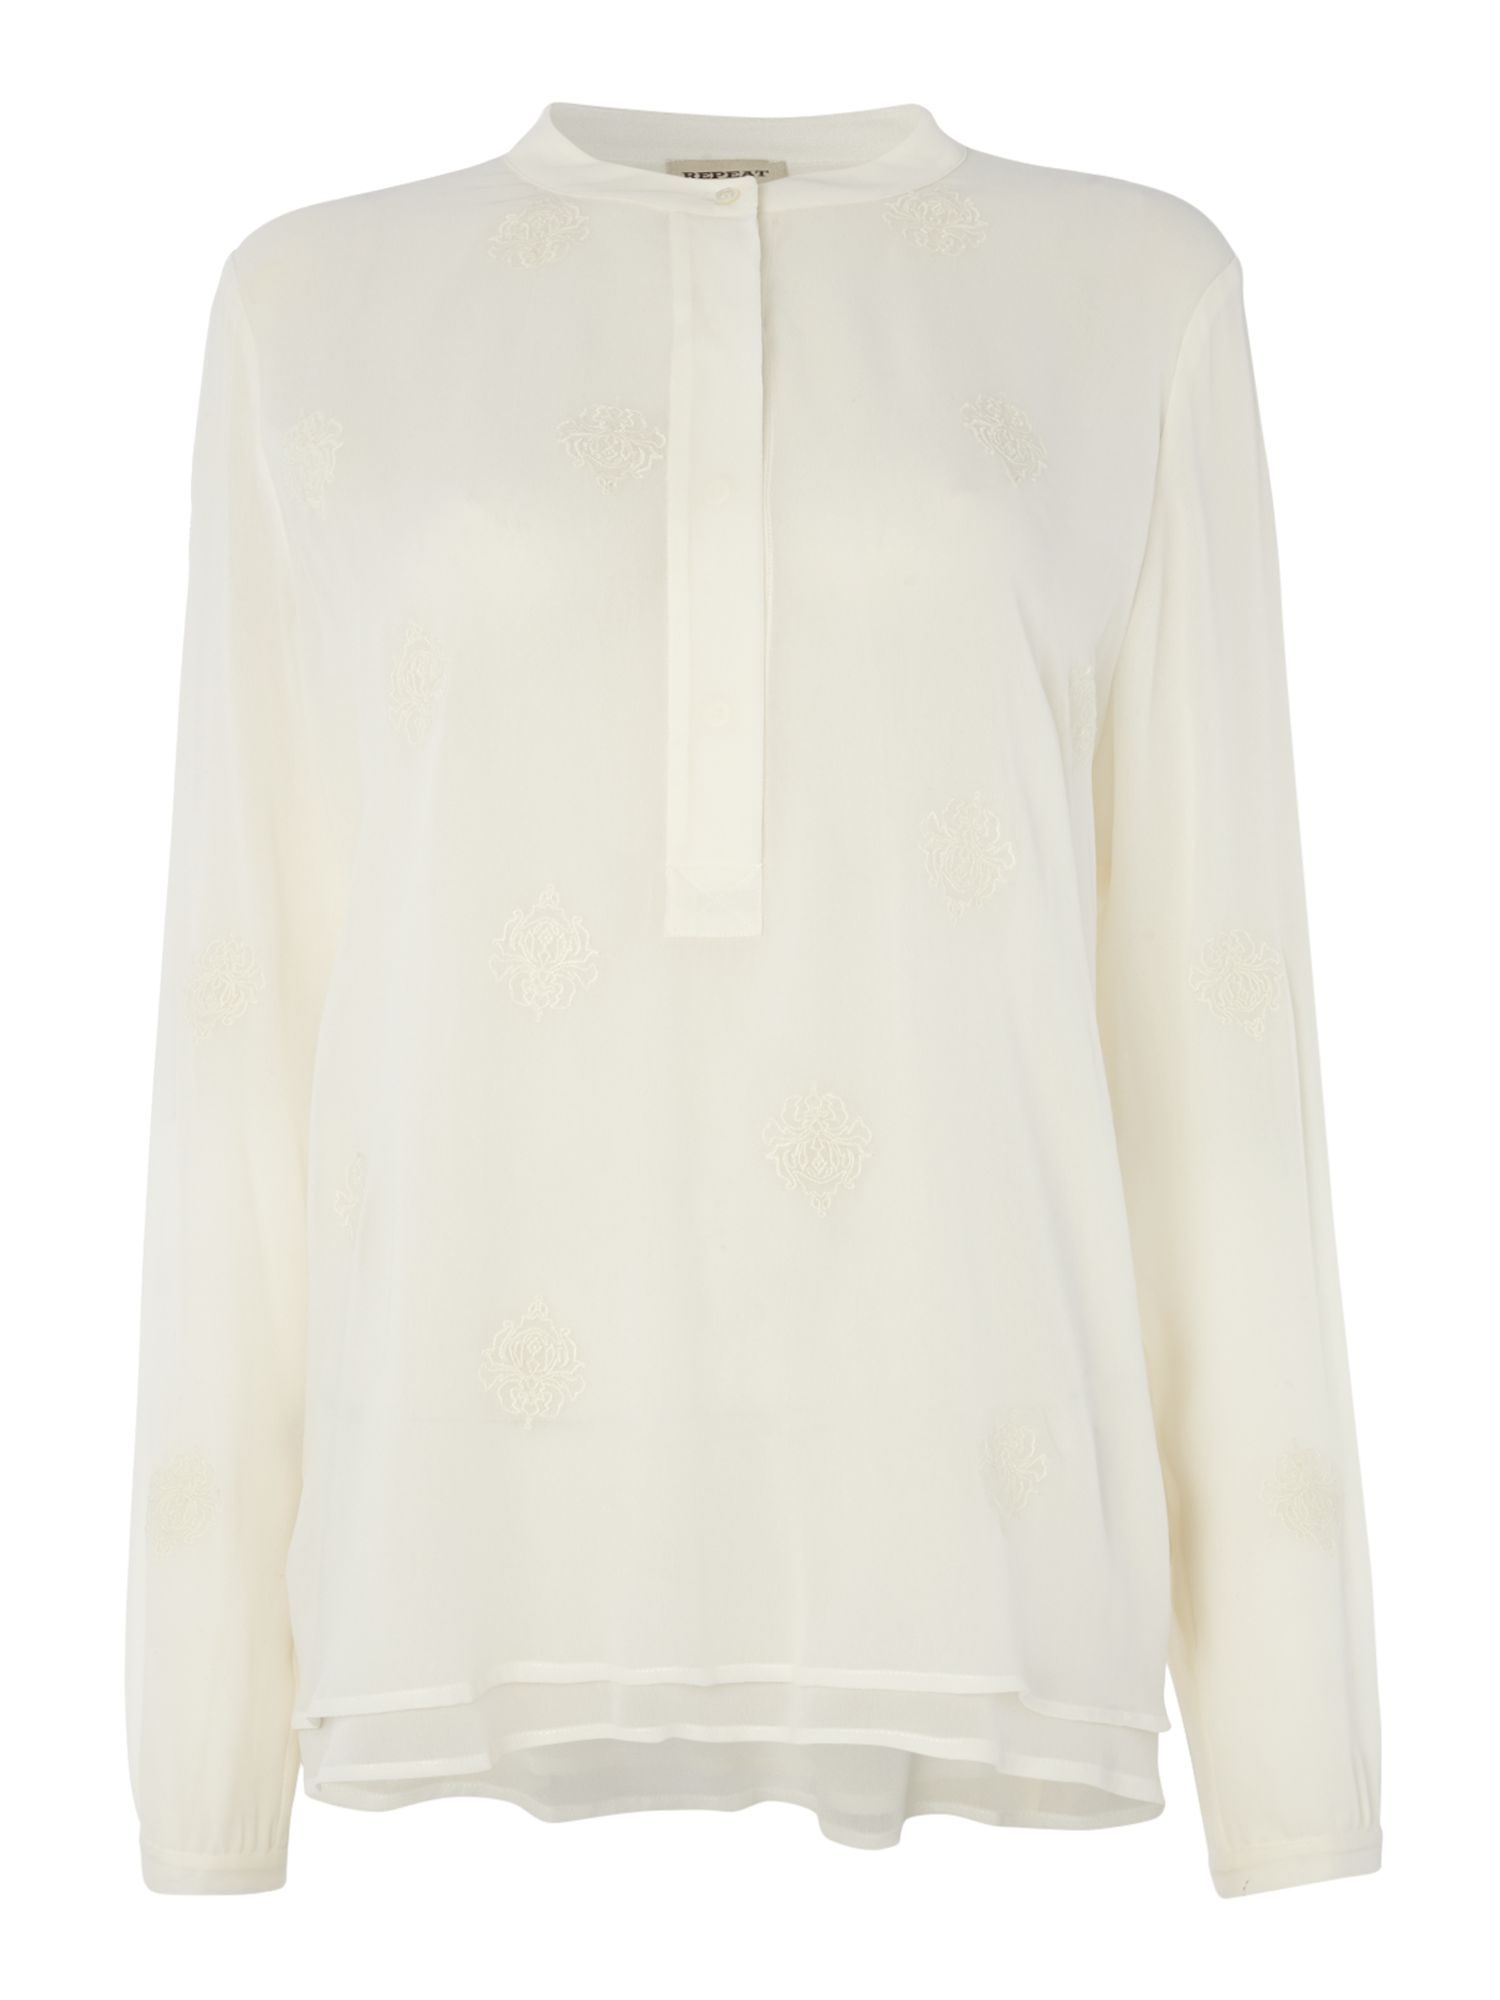 Repeat Cashmere Embroidered blouse, Cream